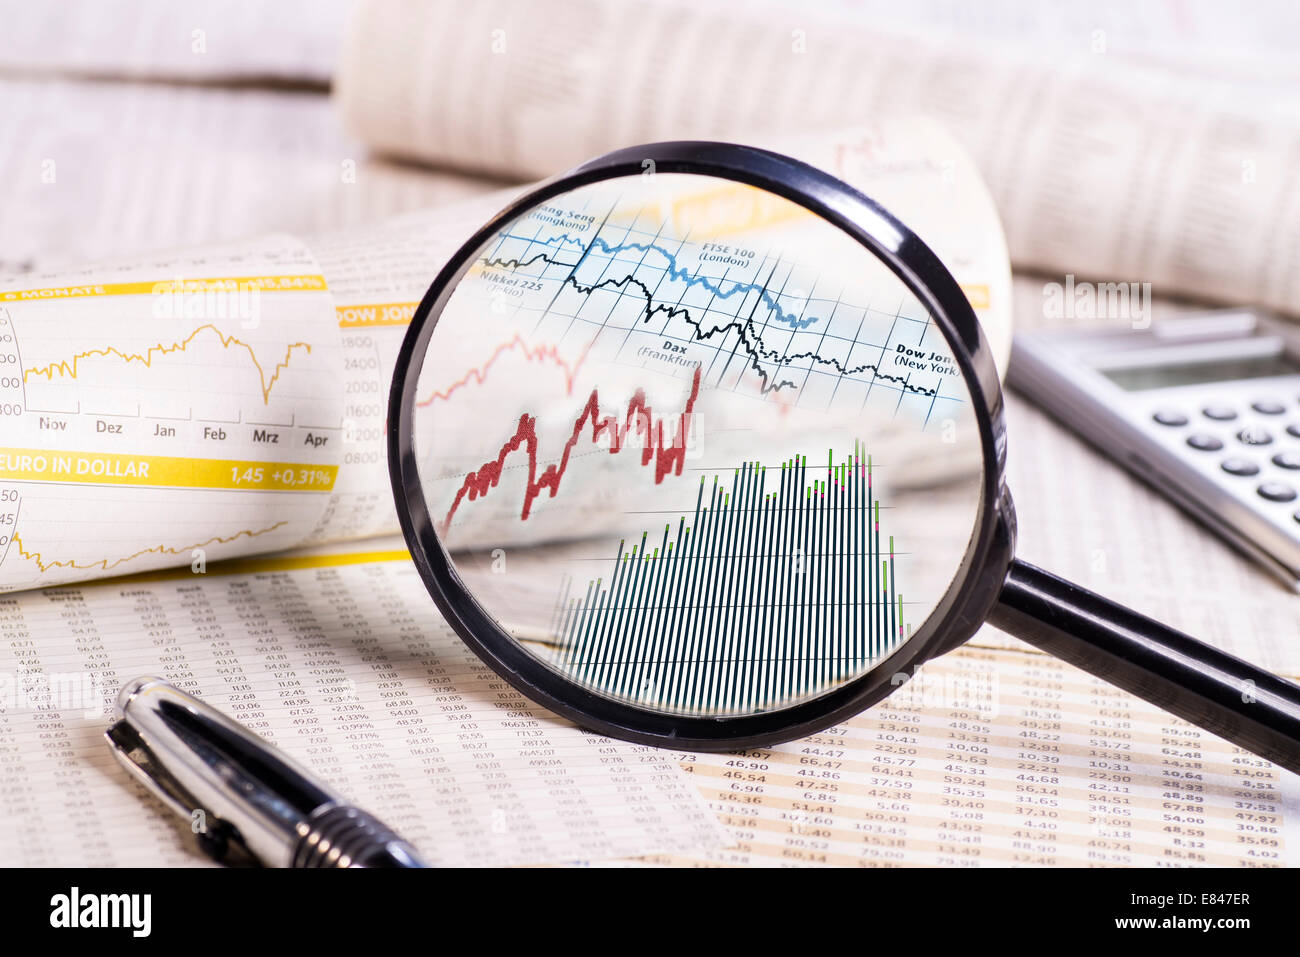 Lupe with stock prices on papers with rate table. - Stock Image